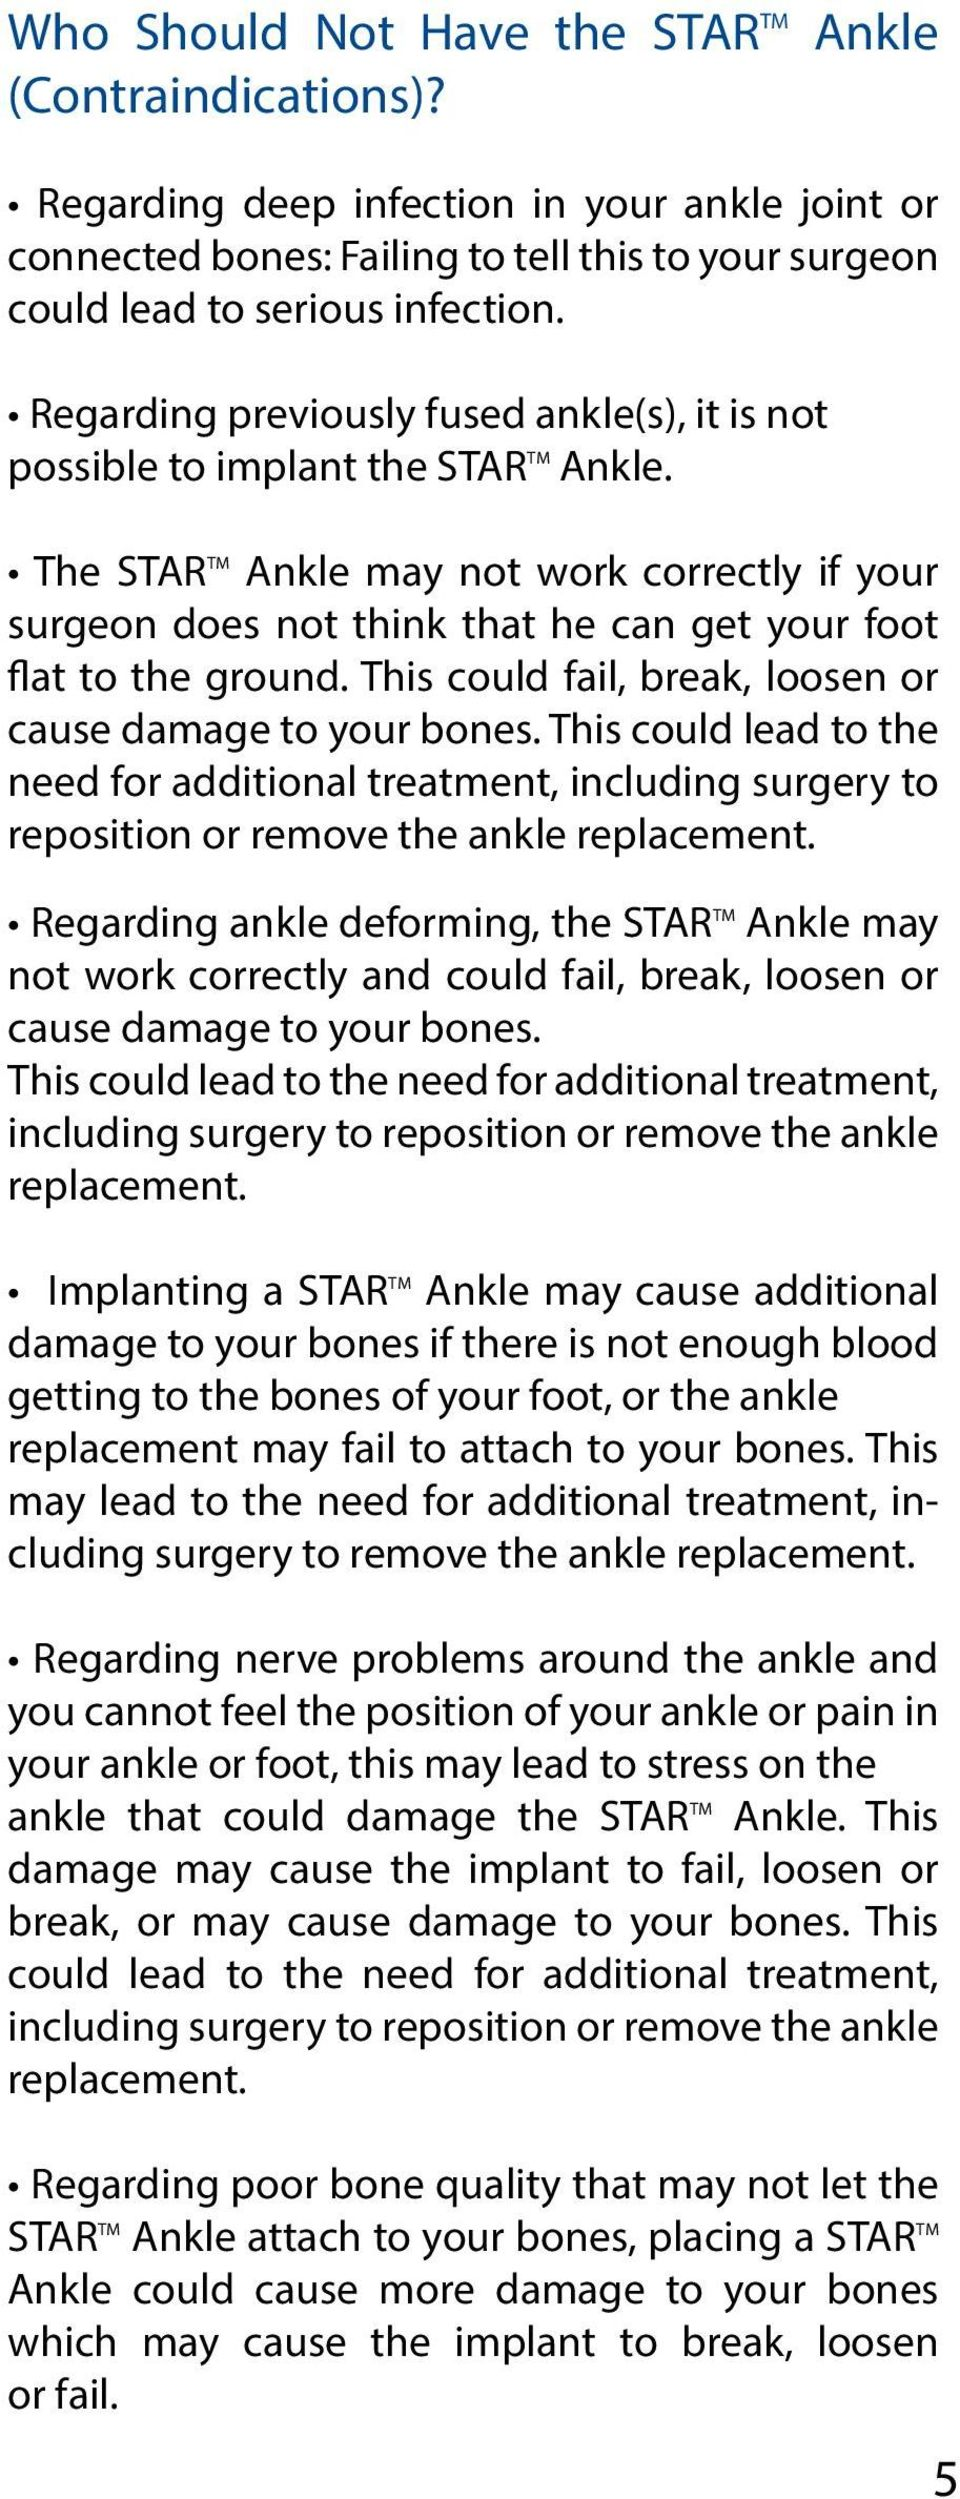 The STAR TM Ankle may not work correctly if your surgeon does not think that he can get your foot flat to the ground. This could fail, break, loosen or cause damage to your bones.